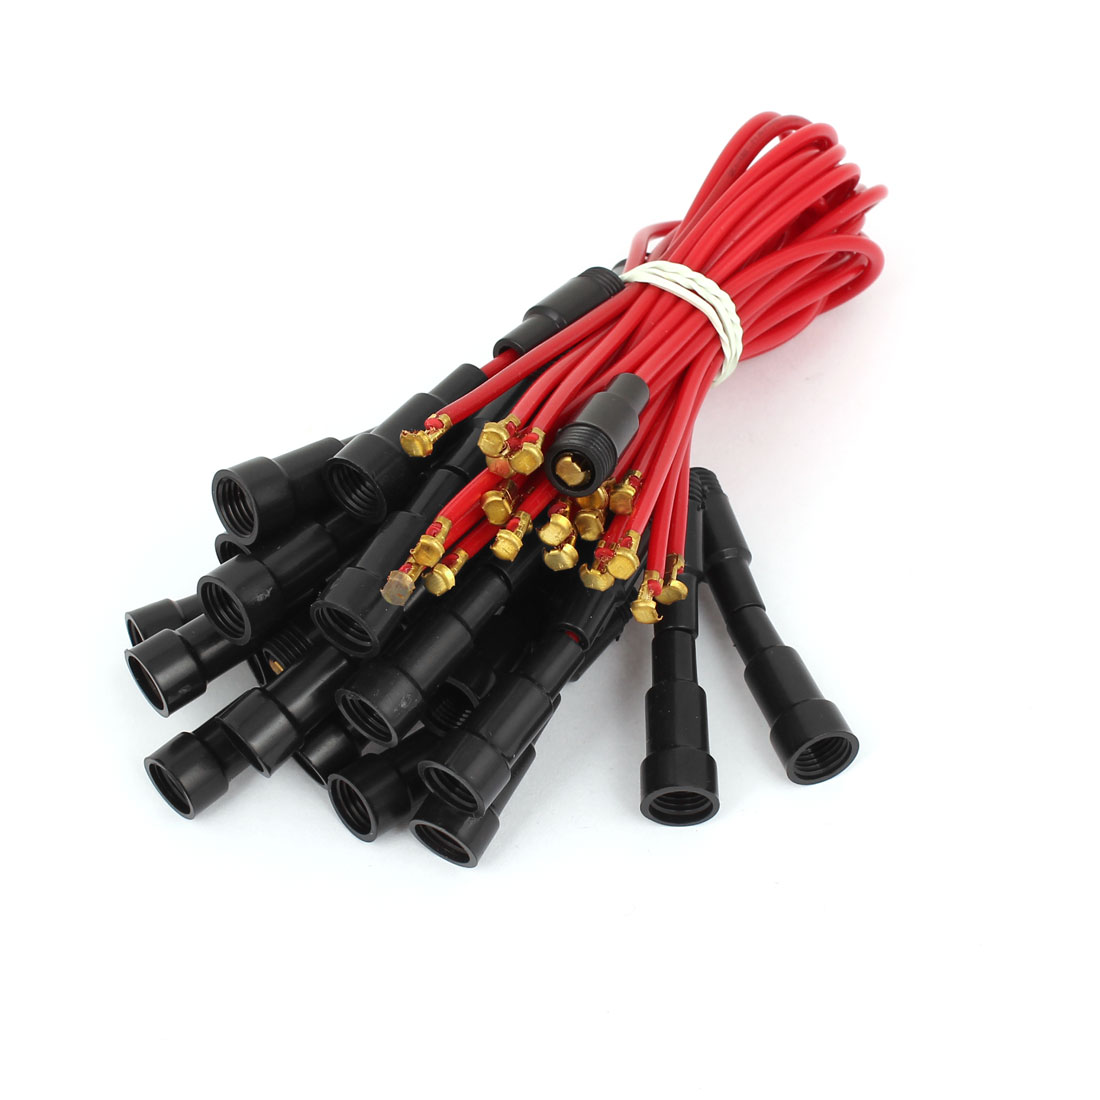 25cm Long Screw Type Car Auto In-line Fuse Holder 20pcs for 5x20mm Fuse